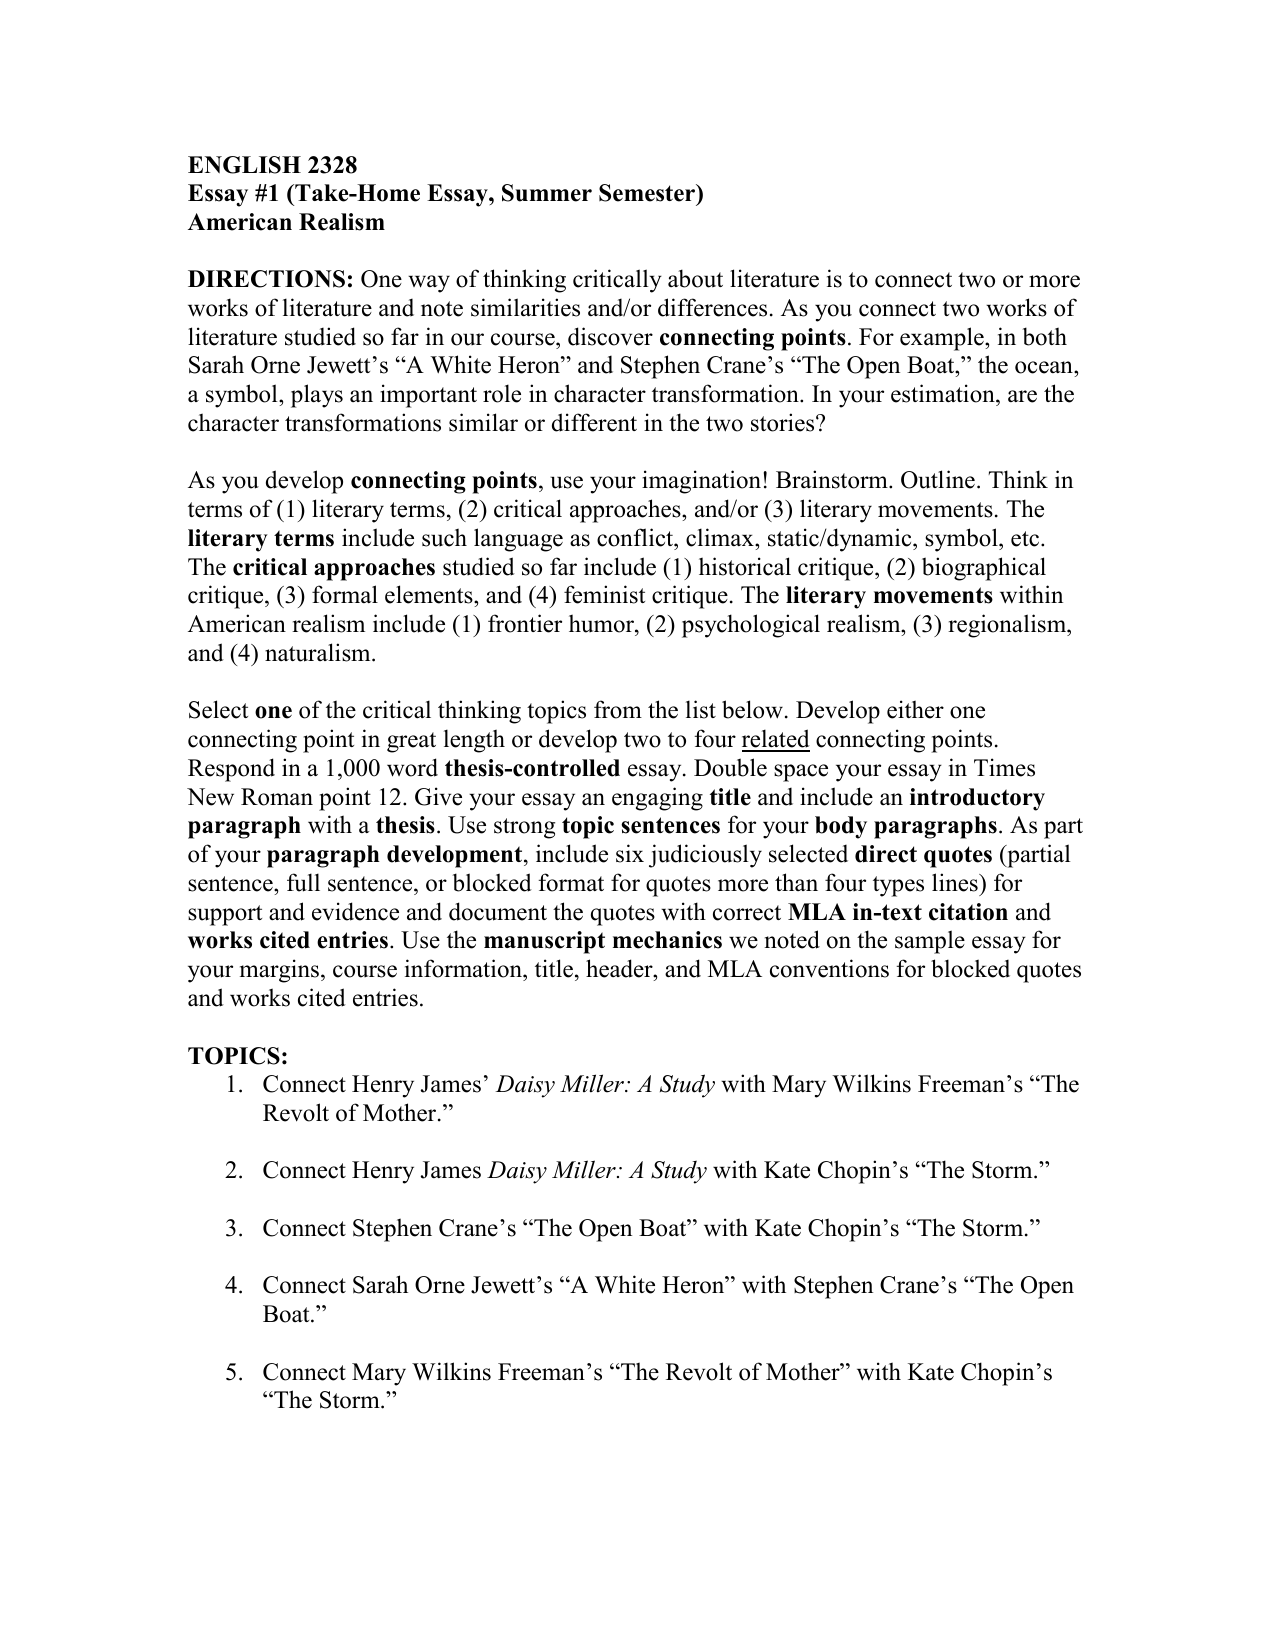 An Essay On Newspaper Essaymsumdoc How To Write An Essay With A Thesis also How To Write A Proposal Essay Englessaymsumdoc Mental Health Essays